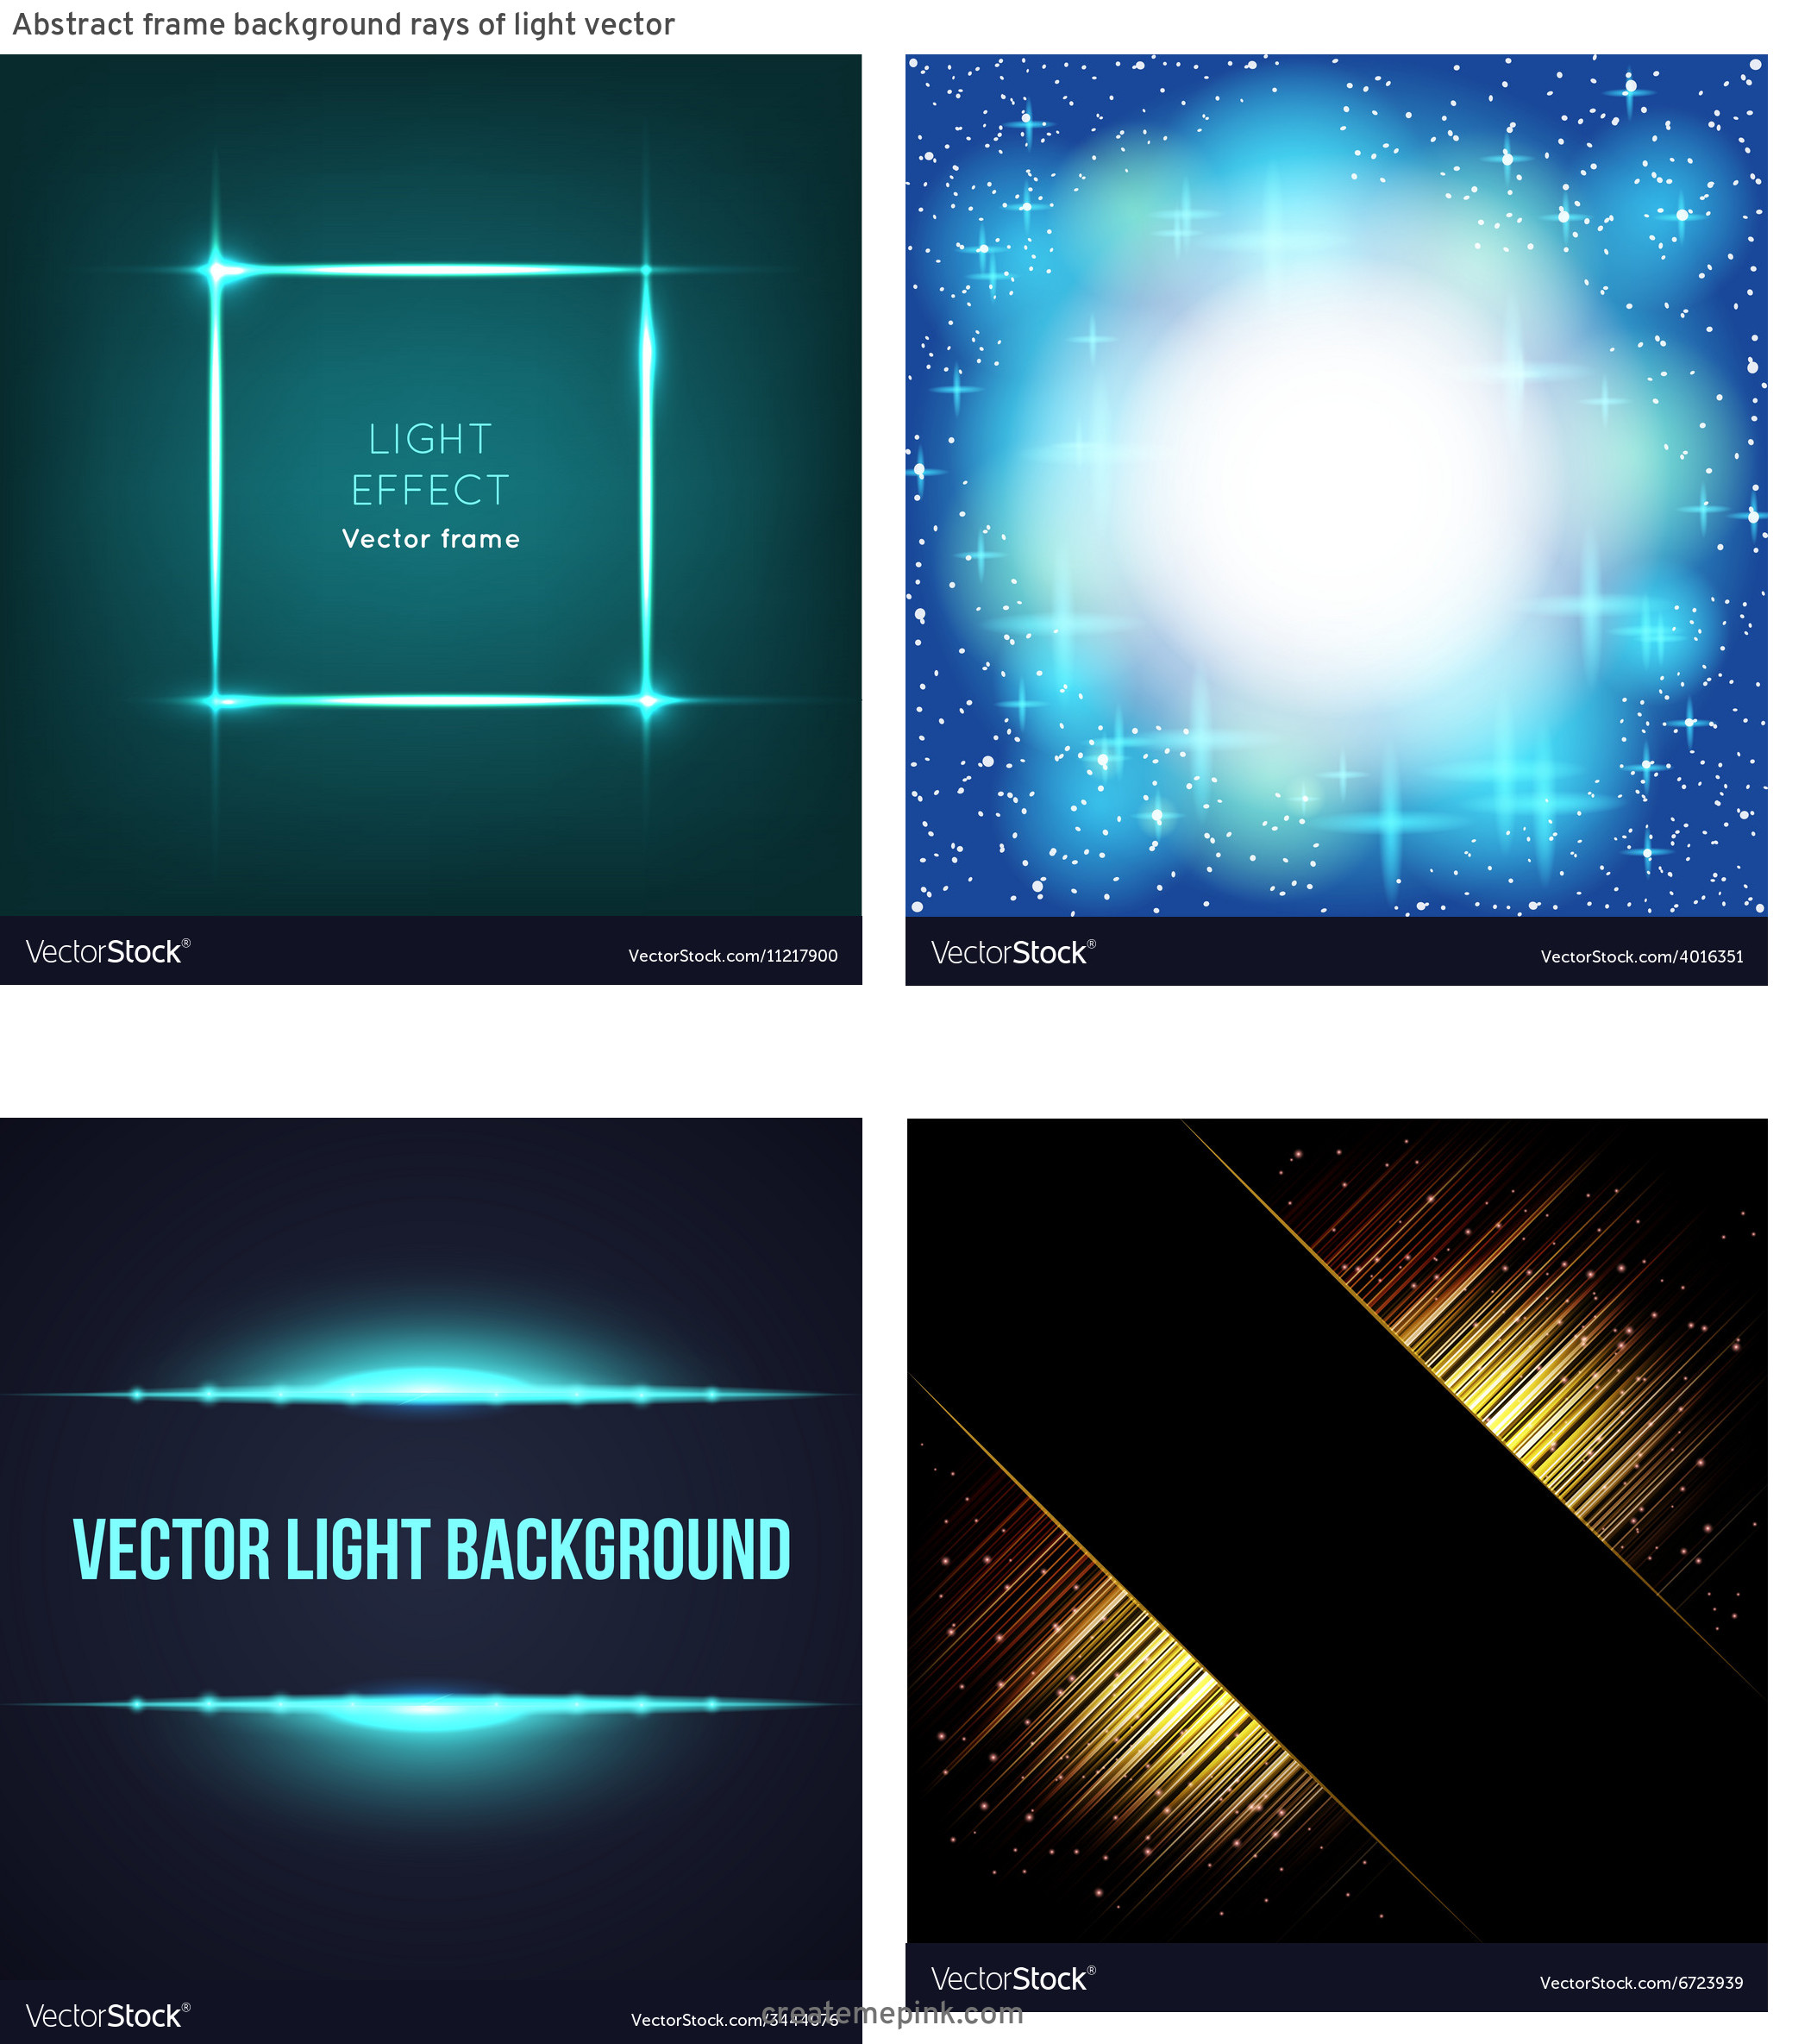 Light Background Vector Frame: Abstract Frame Background Rays Of Light Vector